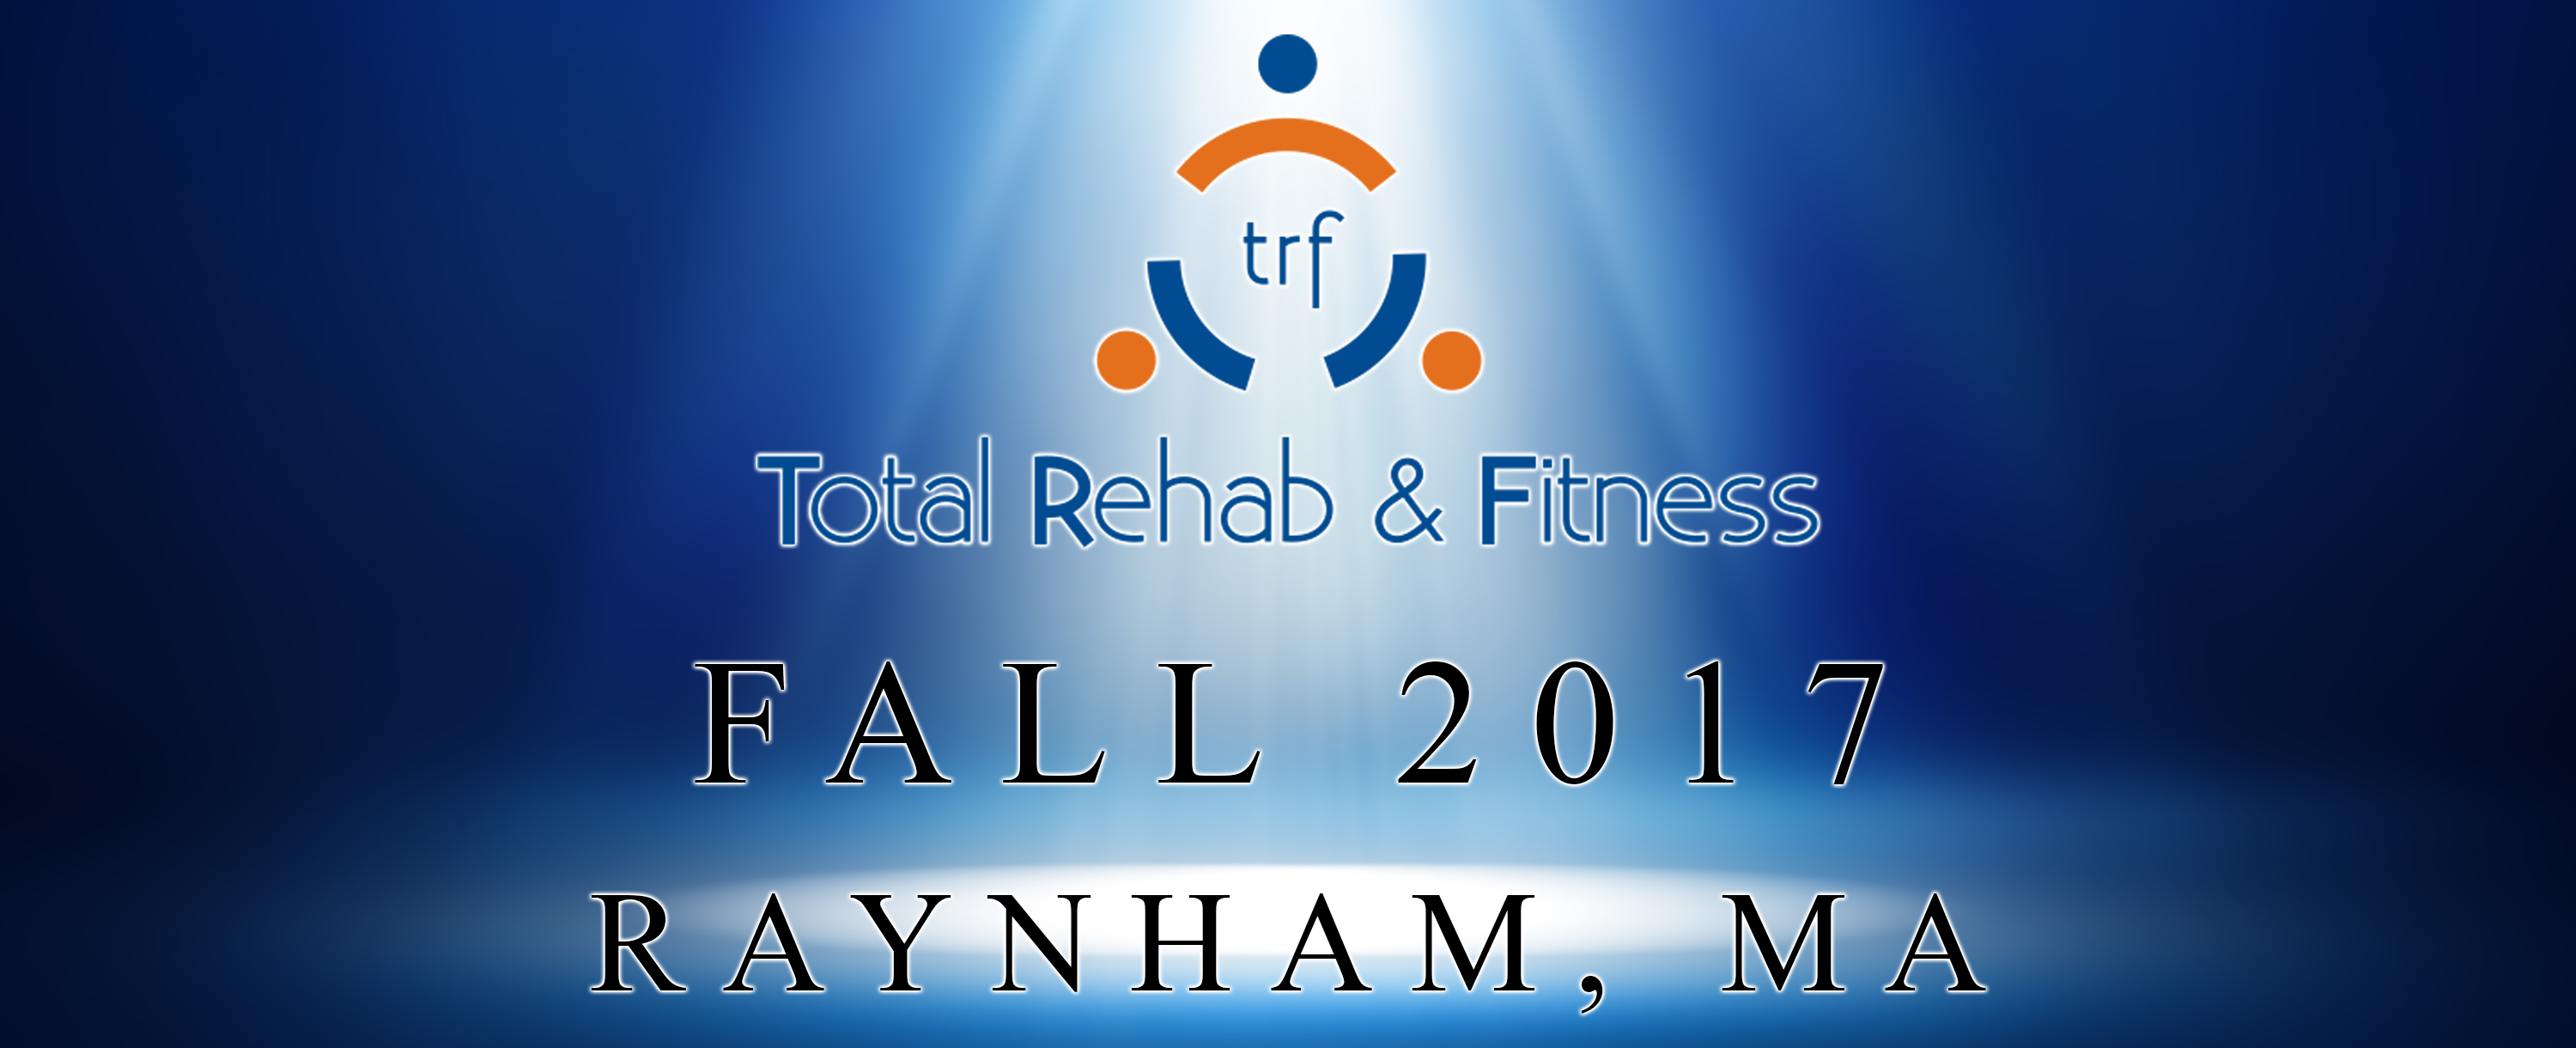 total-rehab-and-fitness-raynham-ma